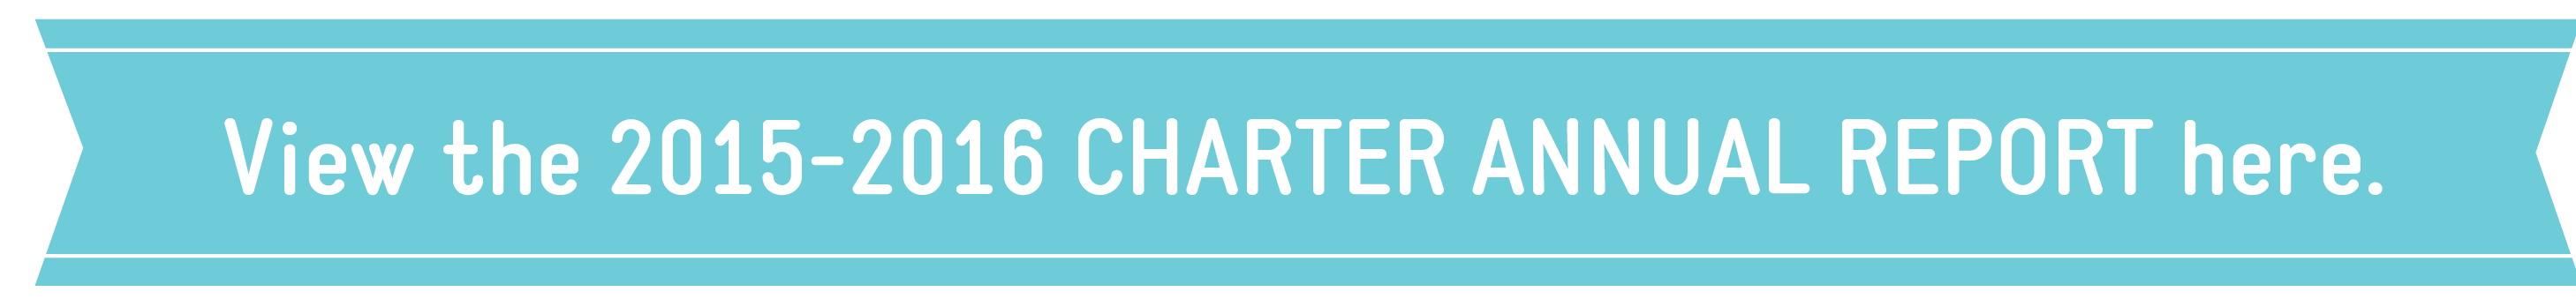 2013 Charter Annual Report